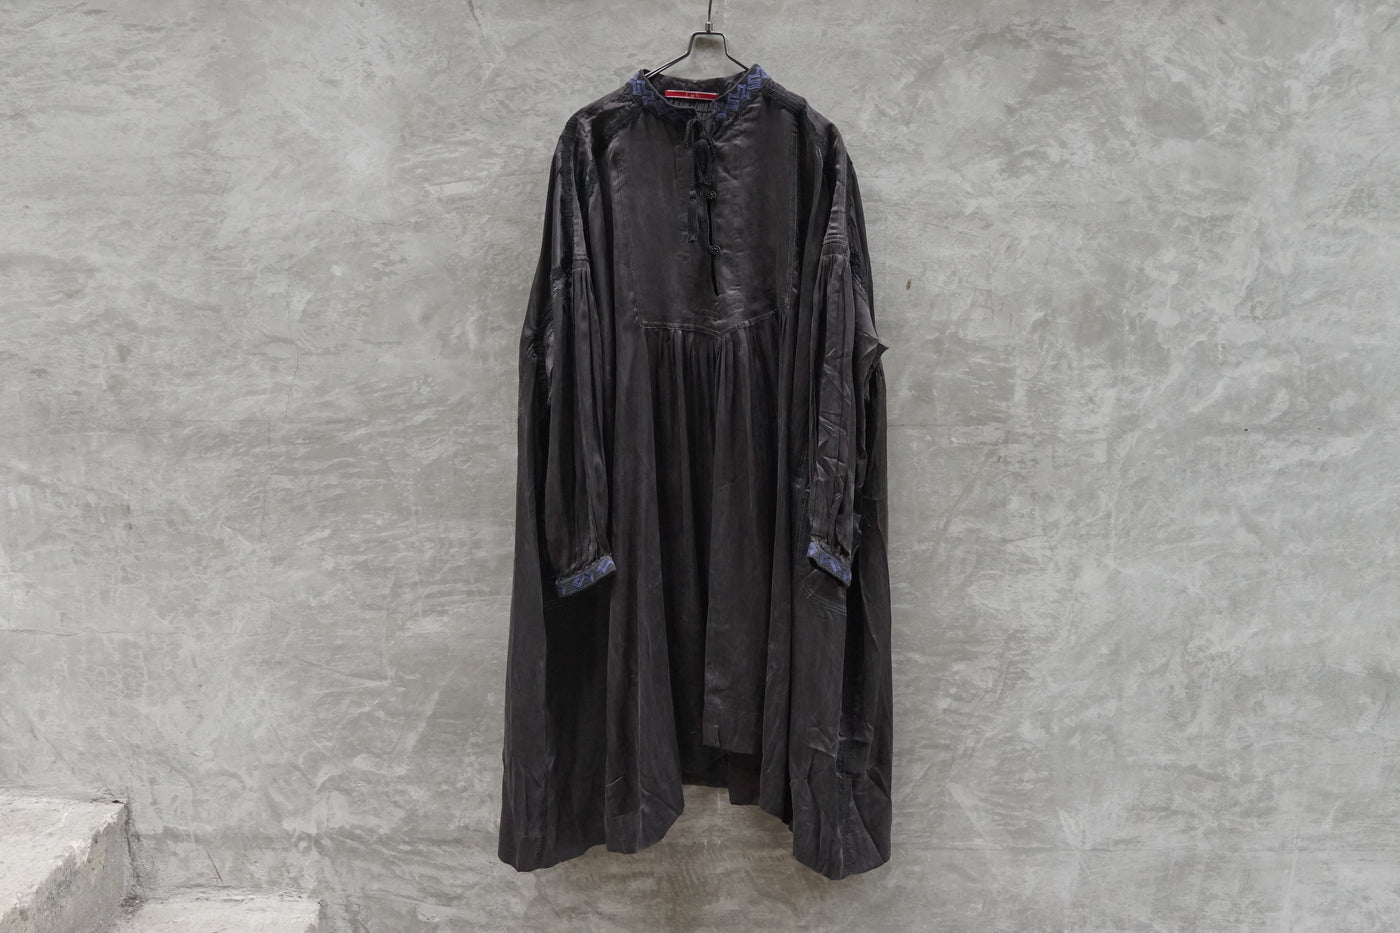 Leh Embroidery Transylvania Silk Dress Black